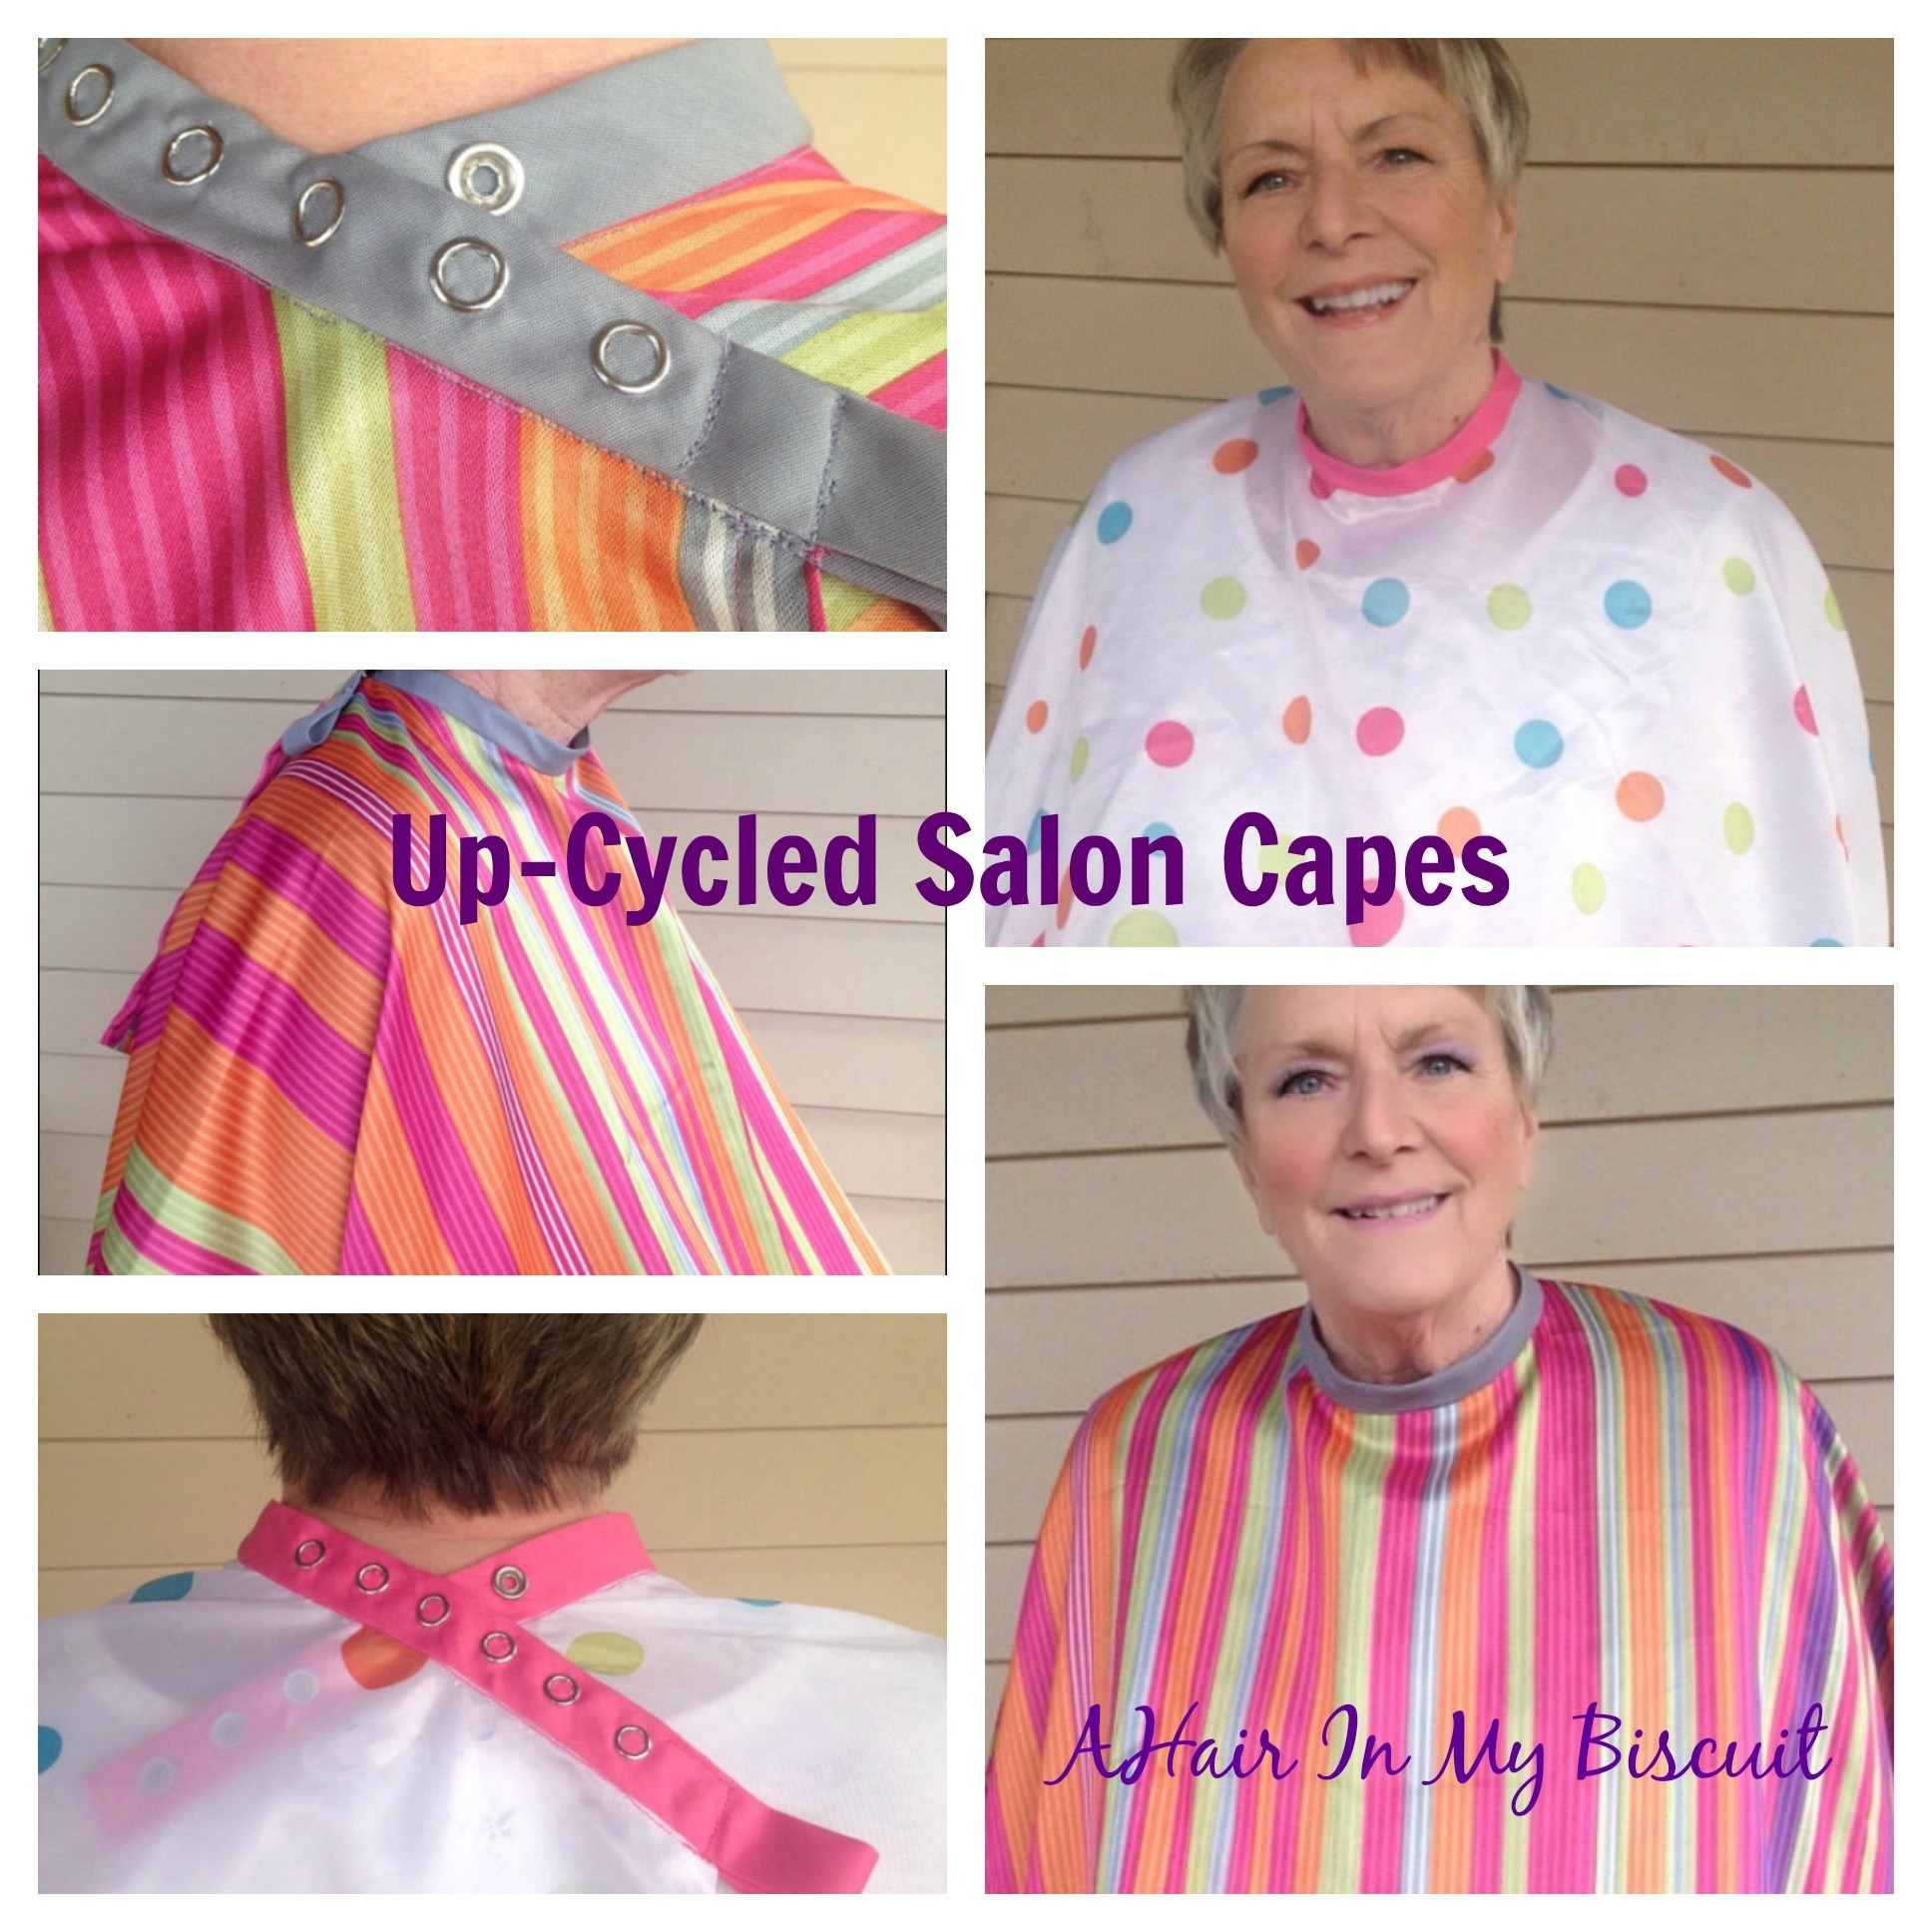 up-cycled salon capes